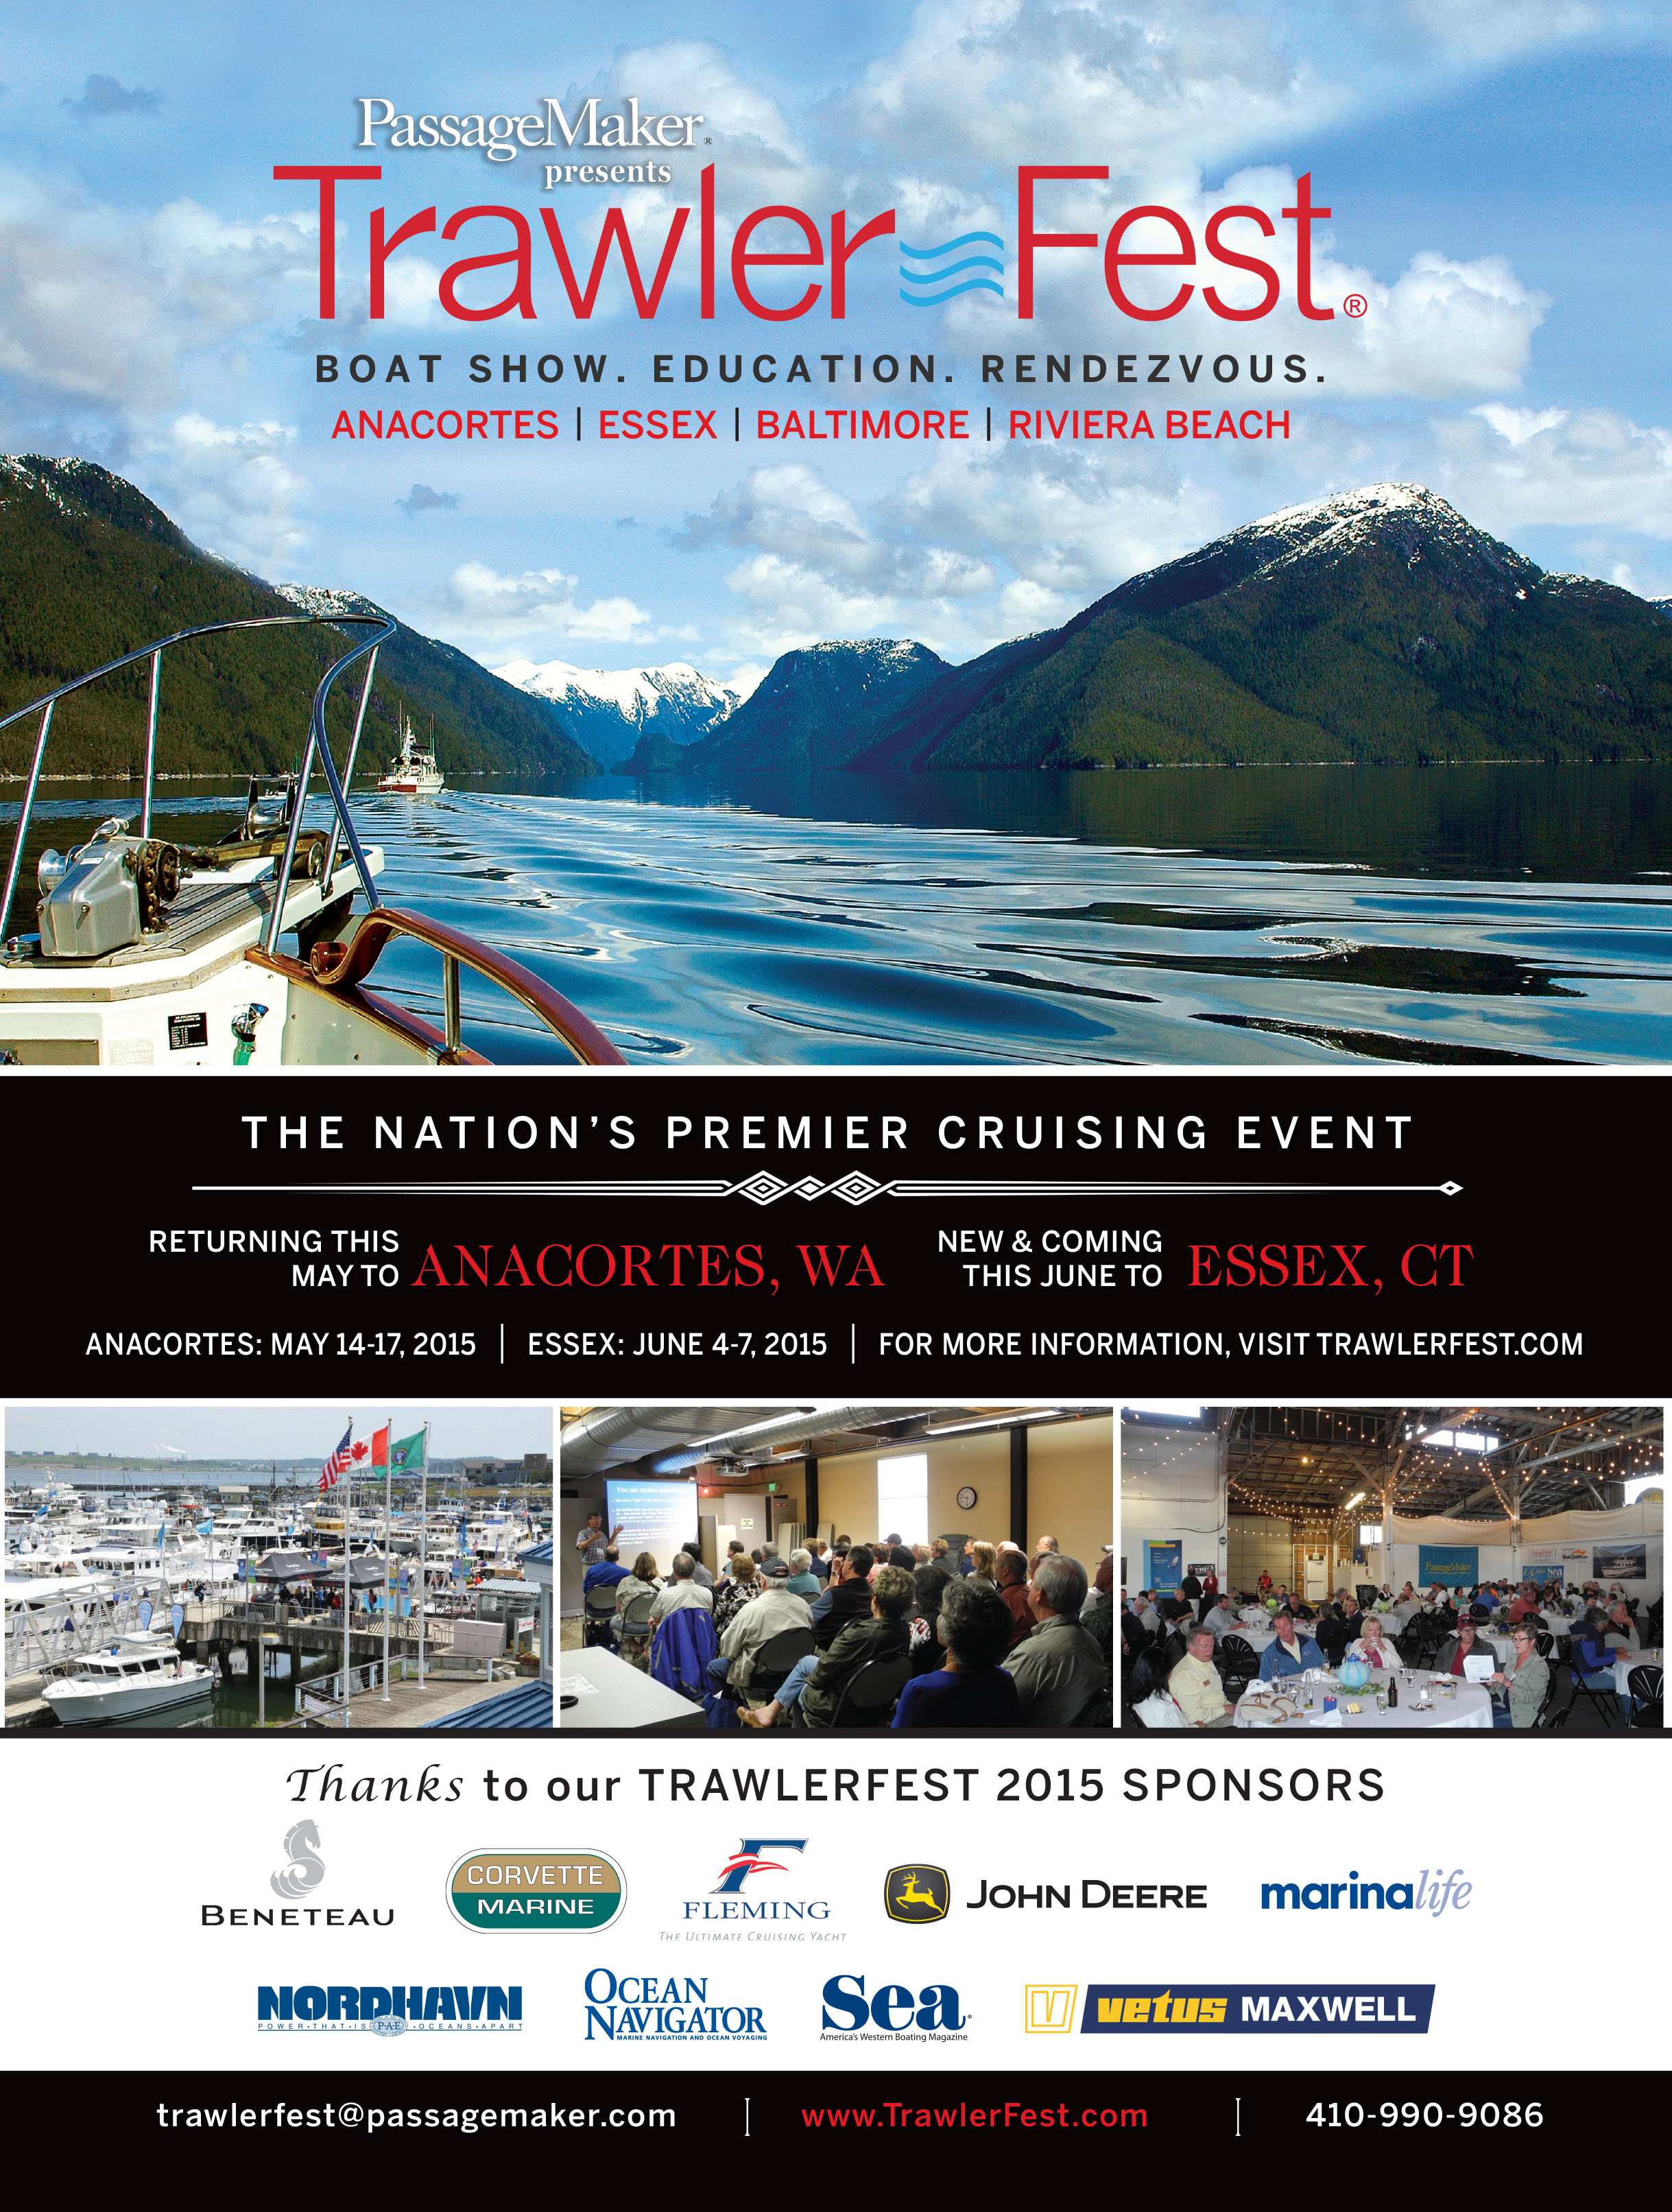 May 14 - 17, 2015, Anacortes, Trawler Fest, JOIN US!